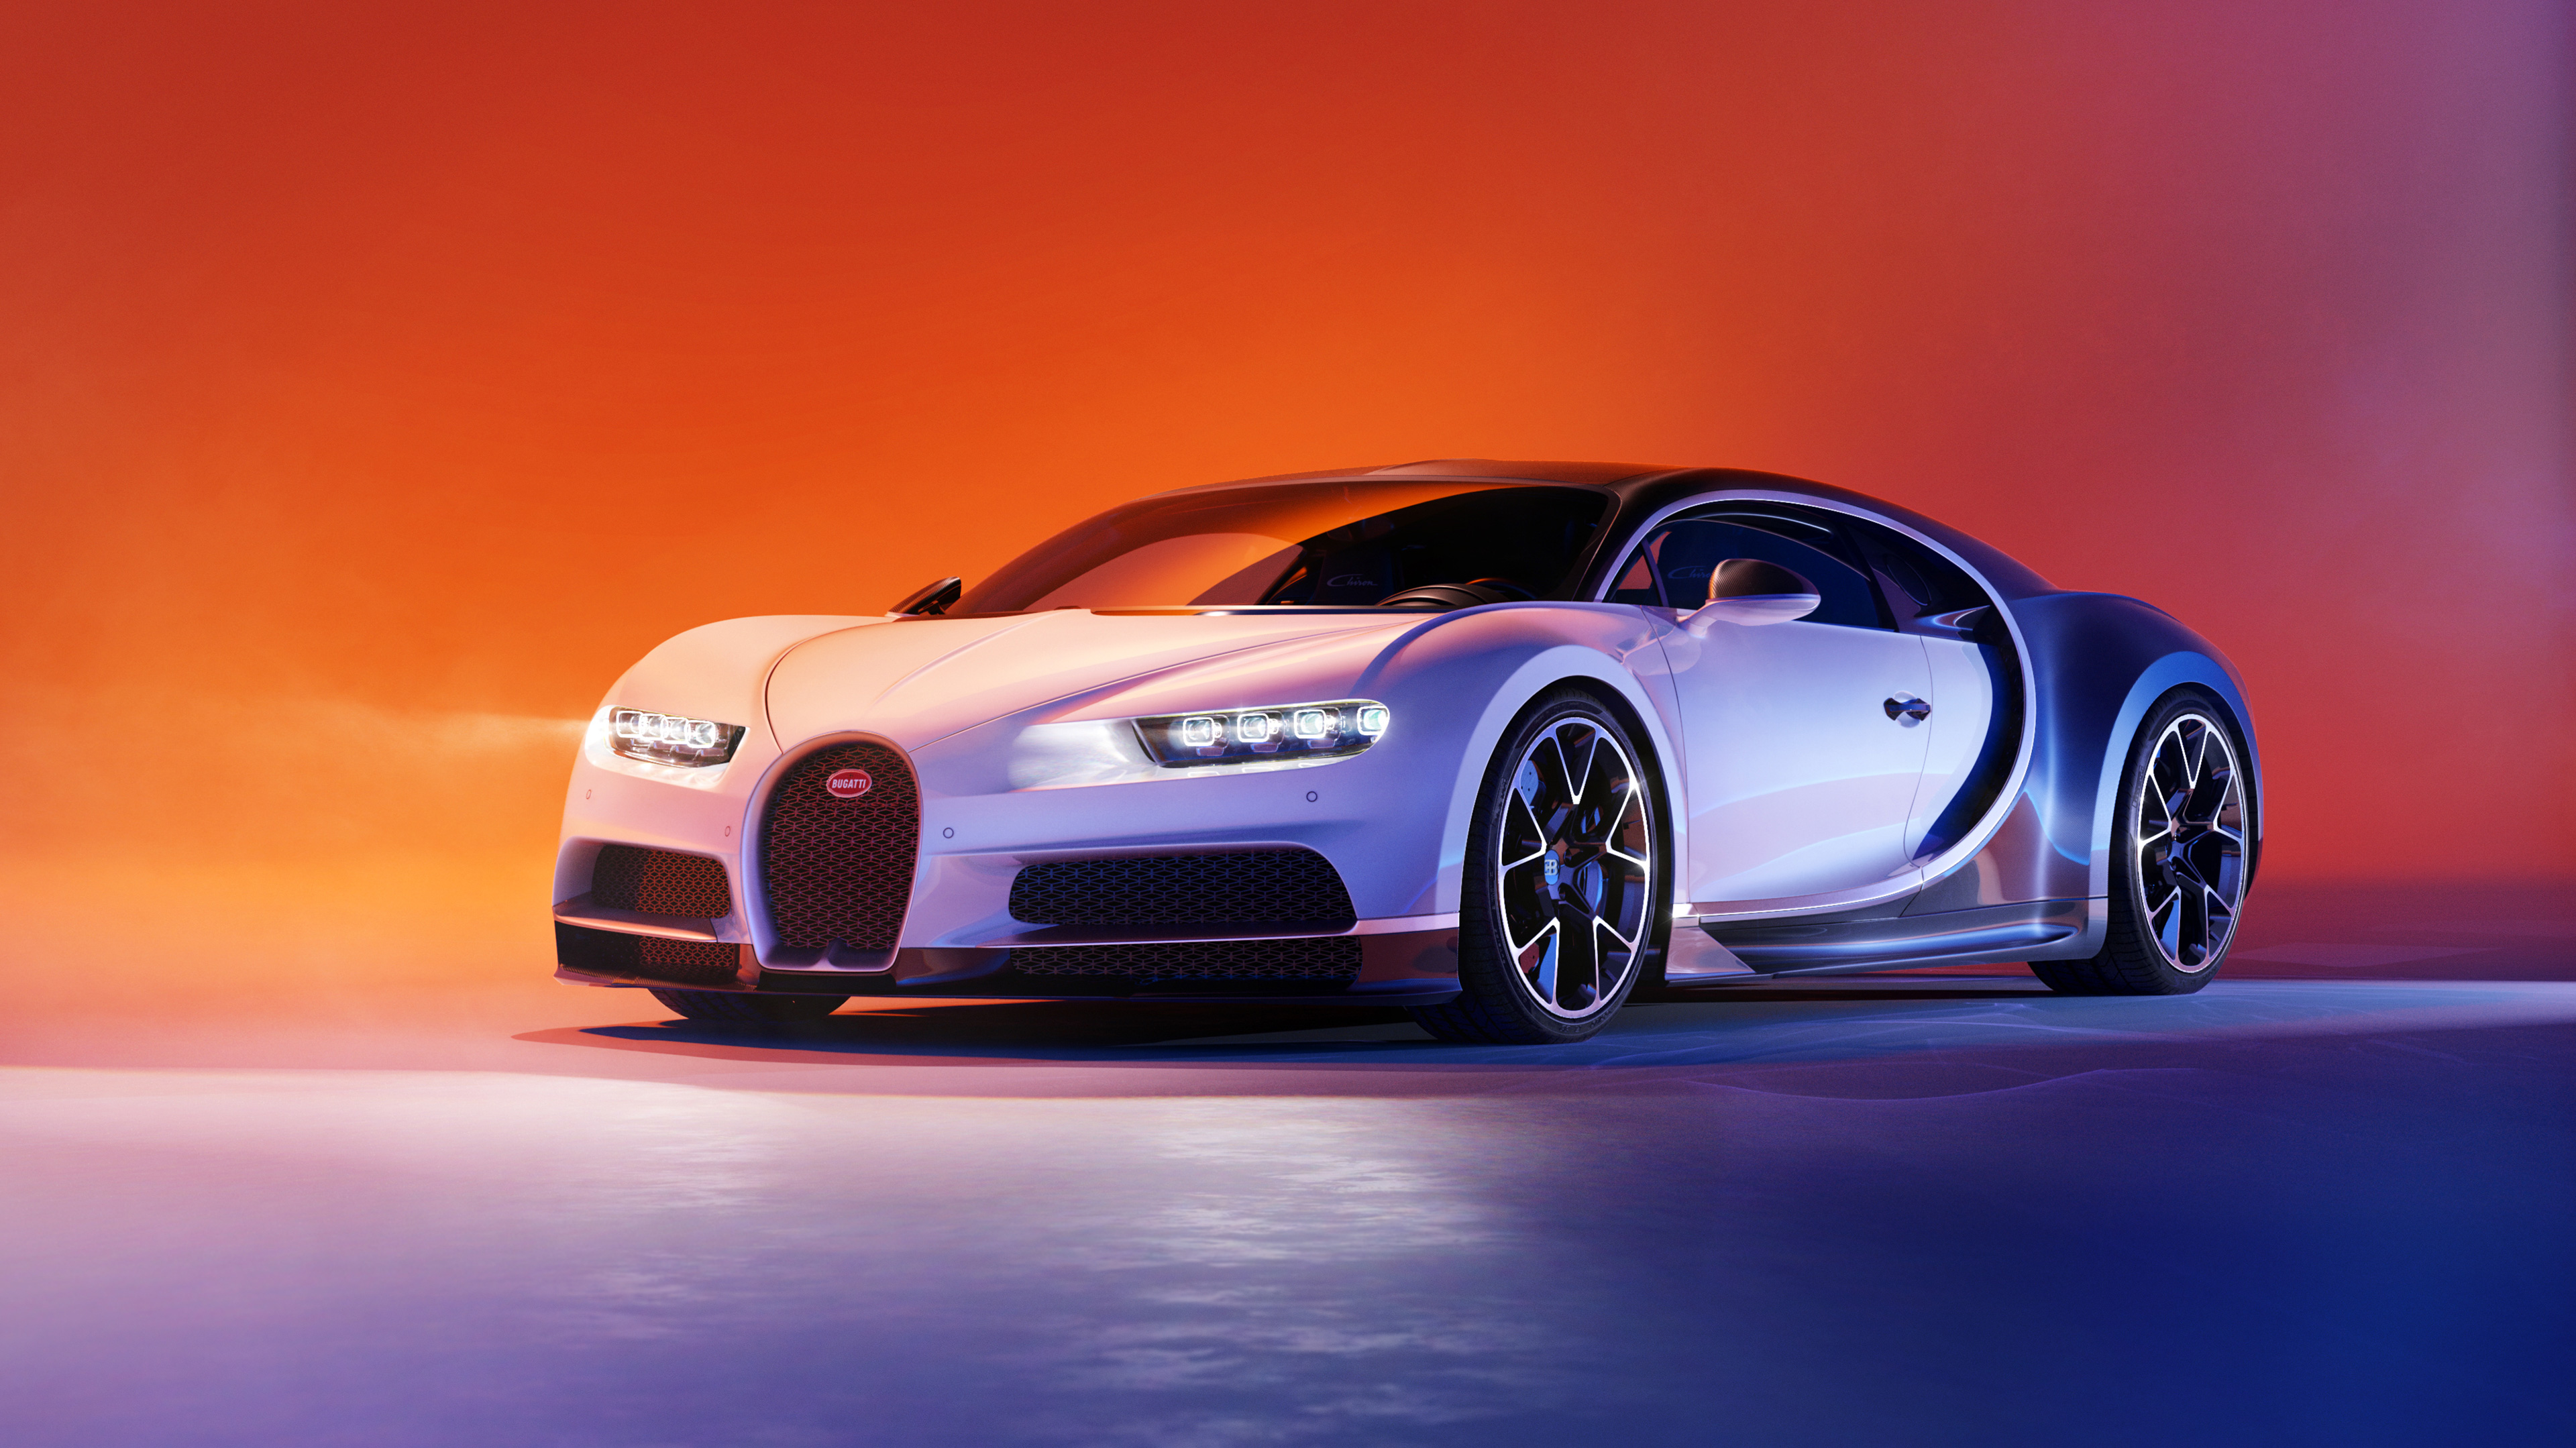 Two Tone Bugatti Chiron 4K, HD Cars, 4k Wallpapers, Images, Backgrounds, Photos and Pictures